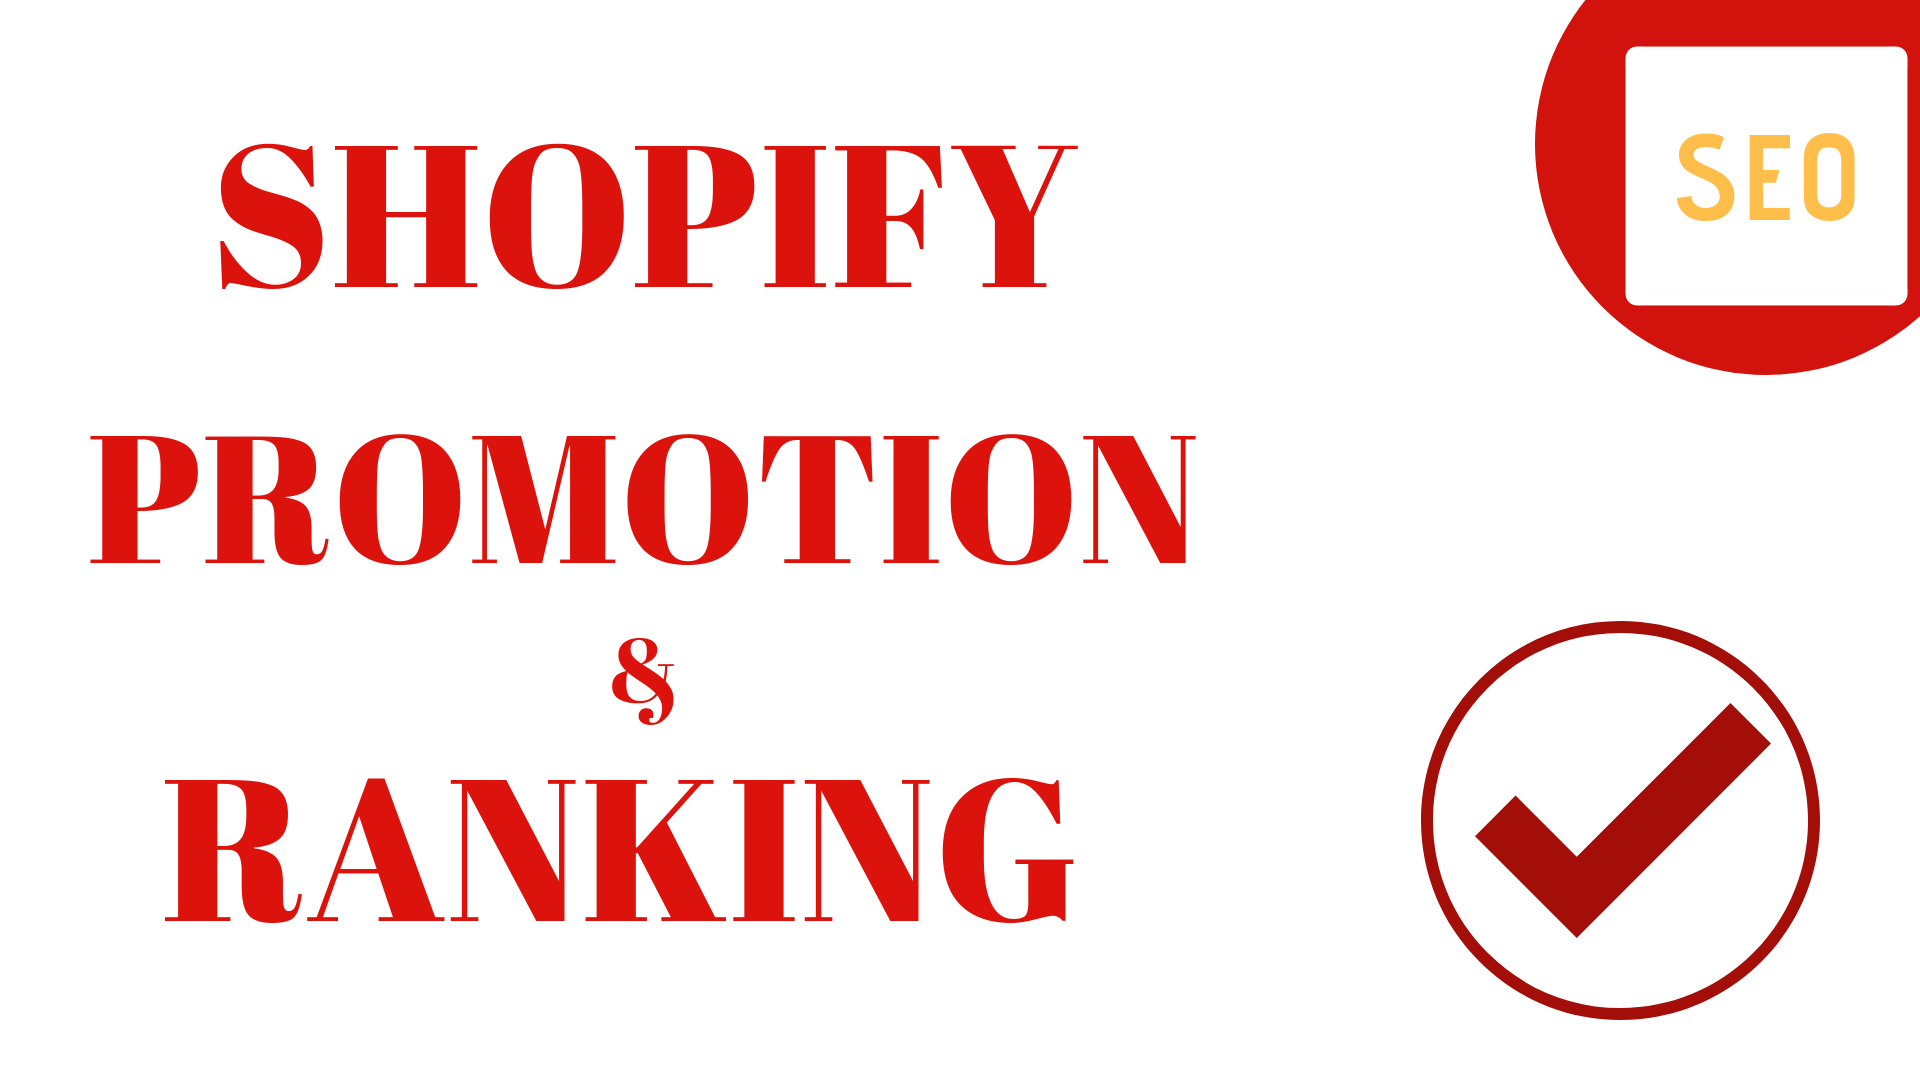 do shopify promotion to get top ranking, online store sales